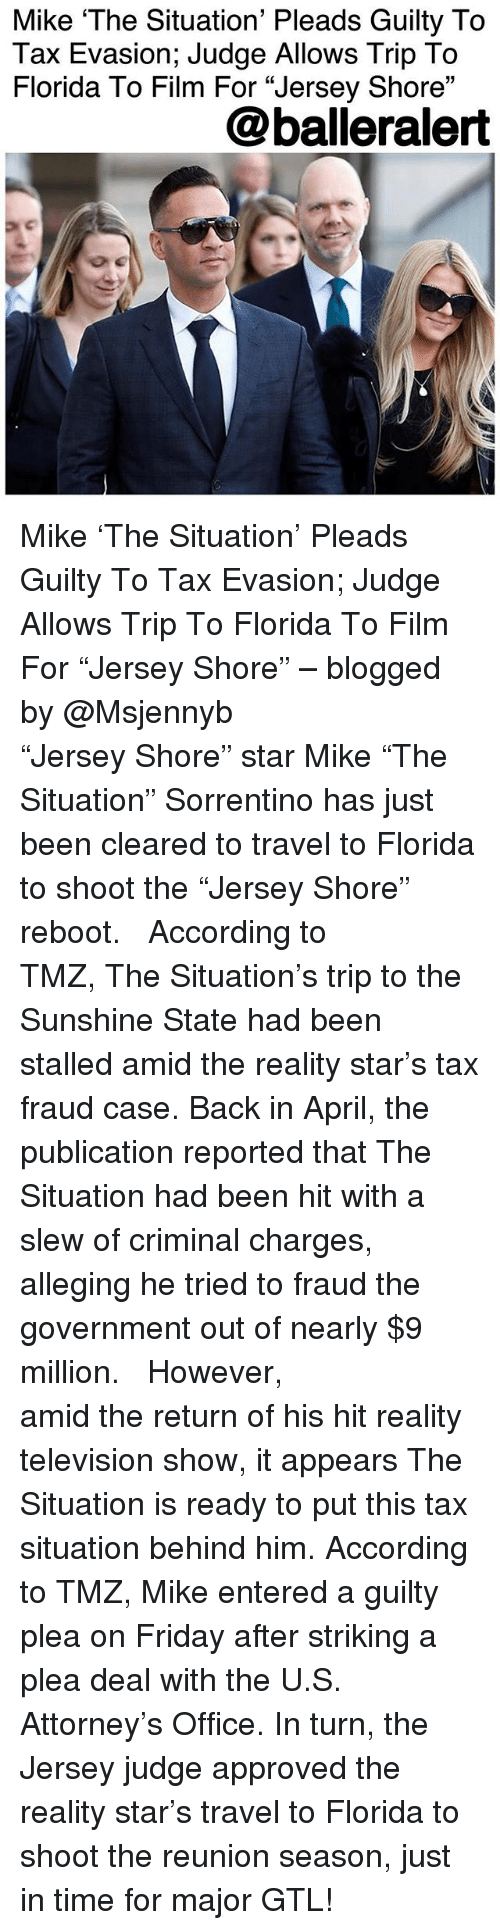 """Friday, Memes, and Florida: Mike 'The Situation' Pleads Guilty To  Tax Evasion; Judge Allows Trip To  Florida To Film For """"Jersey Shore""""  03  @balleralert Mike 'The Situation' Pleads Guilty To Tax Evasion; Judge Allows Trip To Florida To Film For """"Jersey Shore"""" – blogged by @Msjennyb ⠀⠀⠀⠀⠀⠀⠀ ⠀⠀⠀⠀⠀⠀⠀ """"Jersey Shore"""" star Mike """"The Situation"""" Sorrentino has just been cleared to travel to Florida to shoot the """"Jersey Shore"""" reboot. ⠀⠀⠀⠀⠀⠀⠀ ⠀⠀⠀⠀⠀⠀⠀ According to TMZ, The Situation's trip to the Sunshine State had been stalled amid the reality star's tax fraud case. Back in April, the publication reported that The Situation had been hit with a slew of criminal charges, alleging he tried to fraud the government out of nearly $9 million. ⠀⠀⠀⠀⠀⠀⠀ ⠀⠀⠀⠀⠀⠀⠀ However, amid the return of his hit reality television show, it appears The Situation is ready to put this tax situation behind him. According to TMZ, Mike entered a guilty plea on Friday after striking a plea deal with the U.S. Attorney's Office. In turn, the Jersey judge approved the reality star's travel to Florida to shoot the reunion season, just in time for major GTL!"""